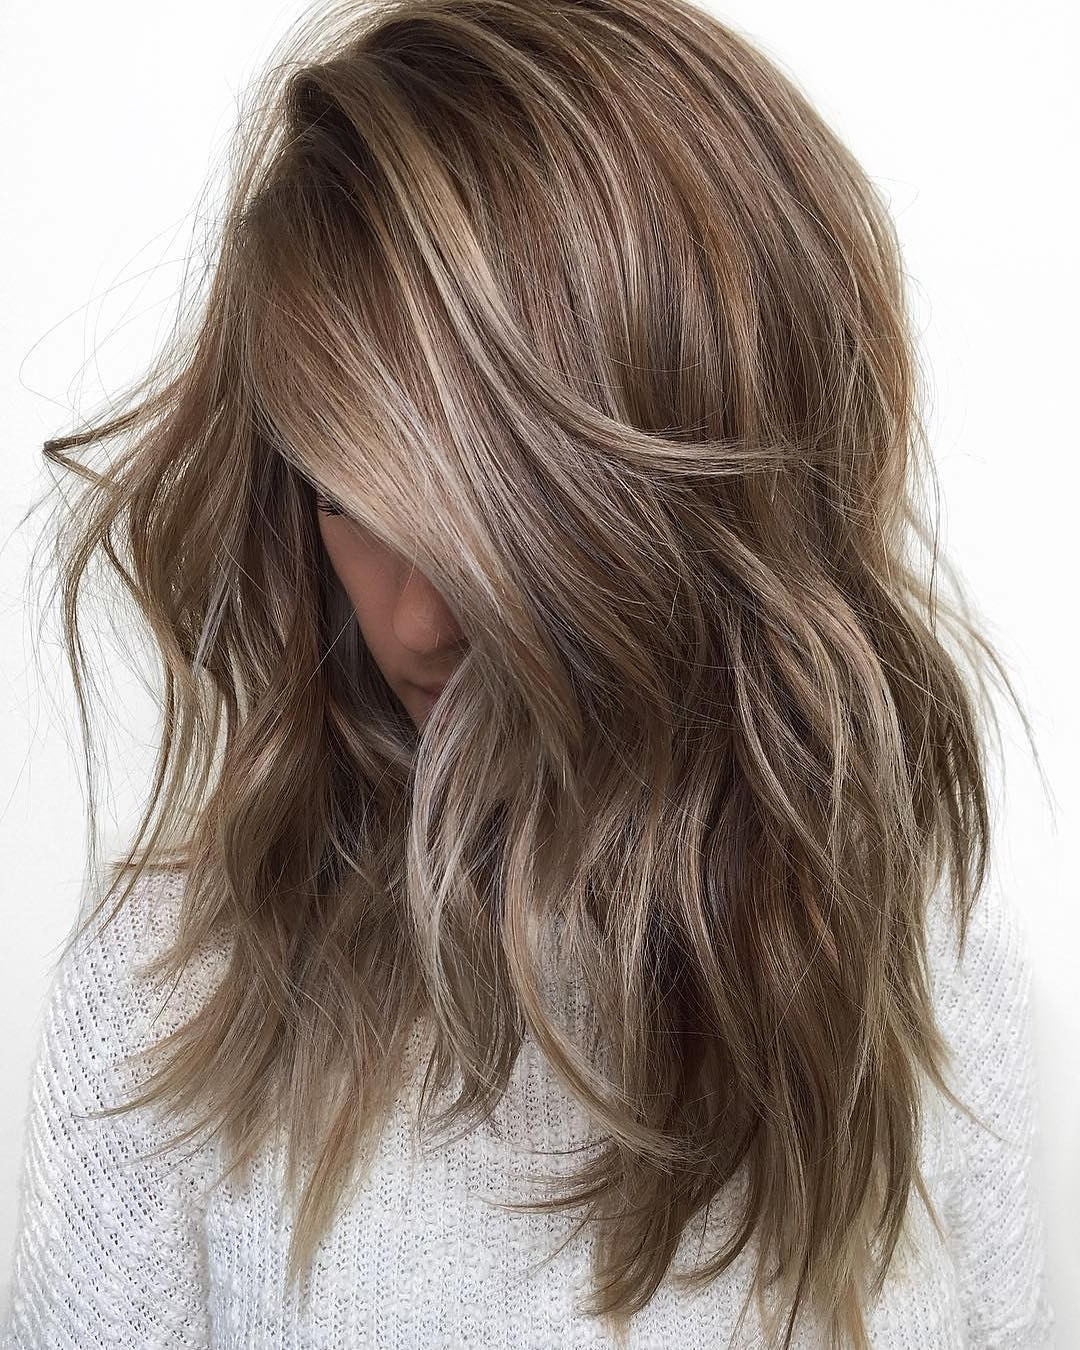 10 Balayage Ombre Hair Styles For Shoulder Length Hair Pertaining To Current Medium Loose Chocolate Shag Haircuts (View 1 of 20)